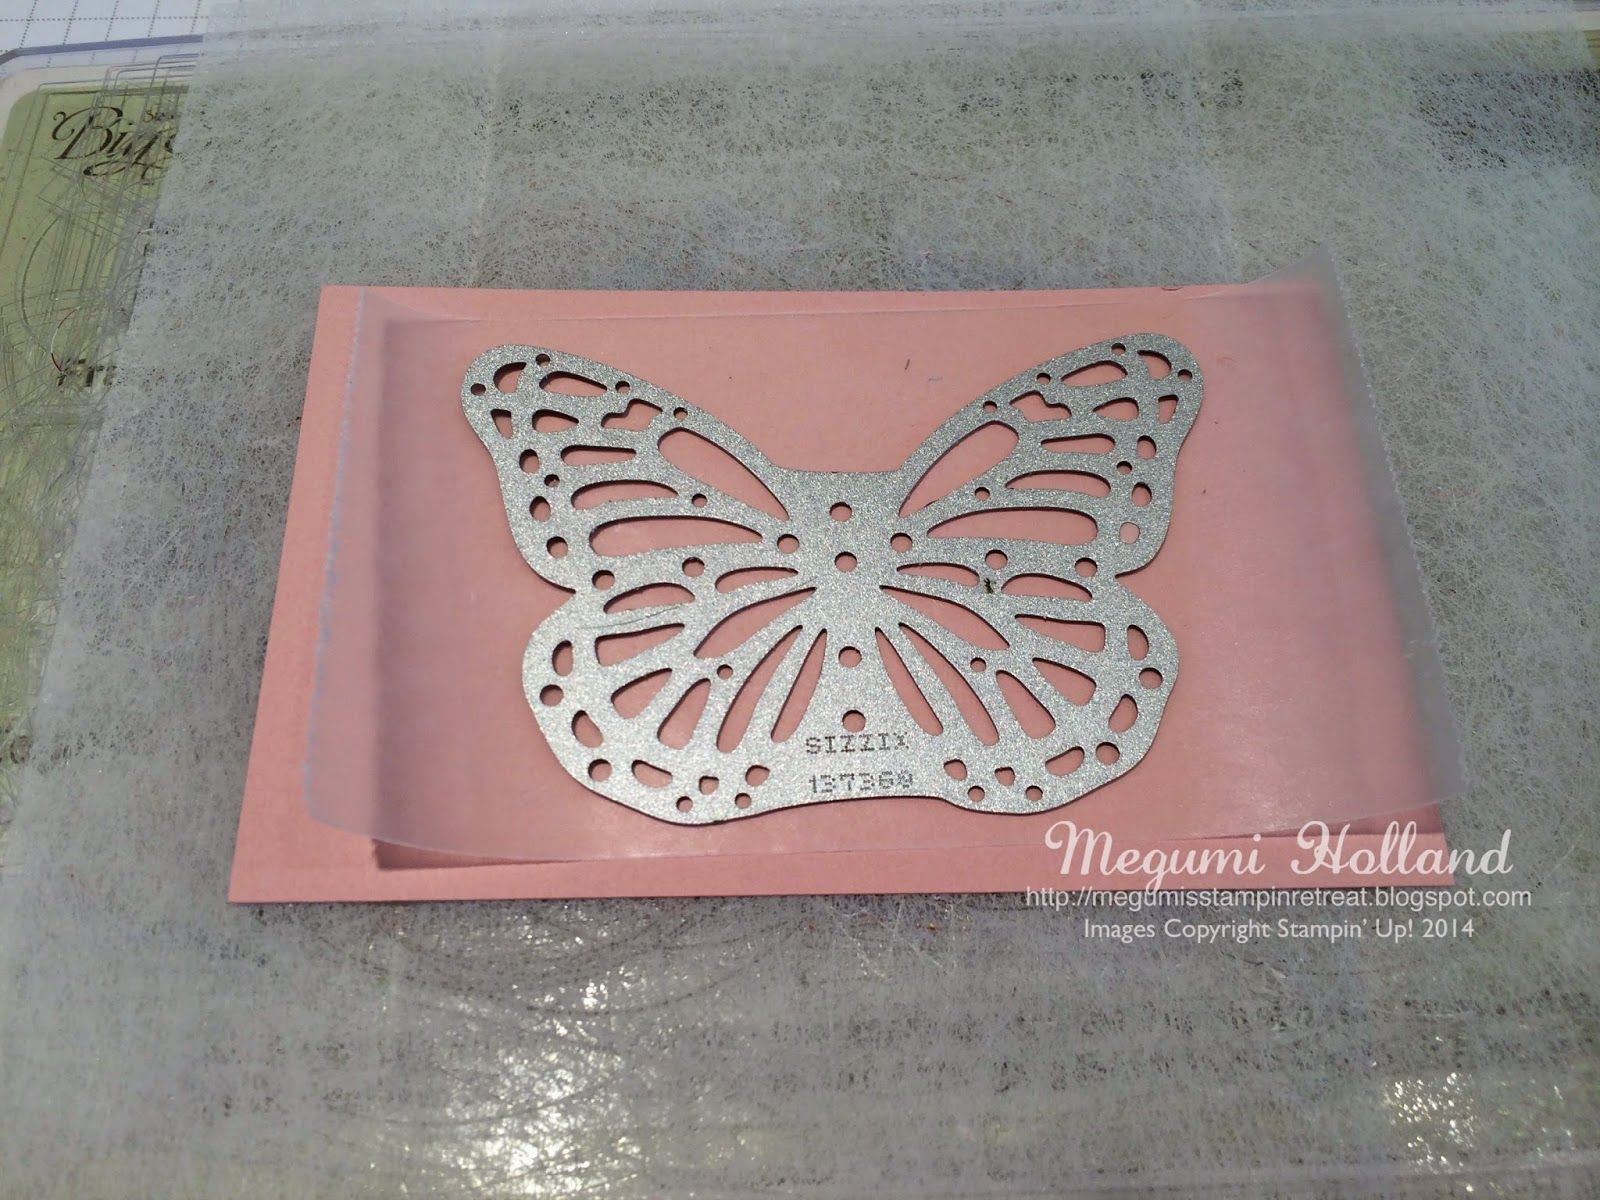 Megumi's Stampin Retreat: Butterfly Basics Dryer Sheets Technique & Winner of January Free Stamp Set